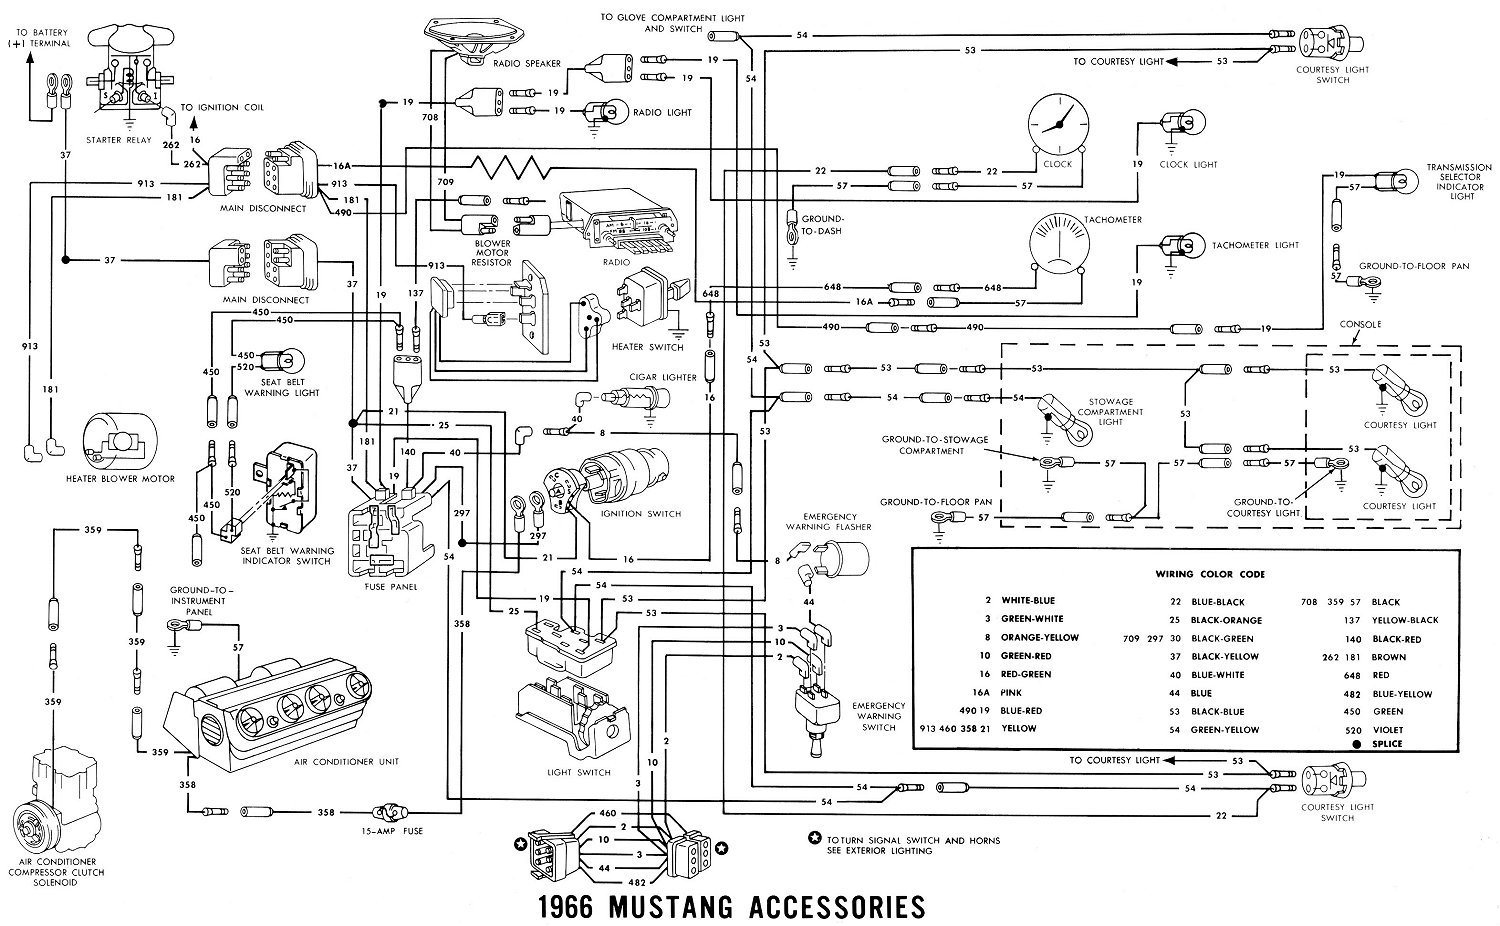 mustang tachometer wiring smart wiring diagrams u2022 rh emgsolutions co 1966 Mustang Alternator Wiring Diagram 1967 Mustang Instrument Panel Wiring Diagram